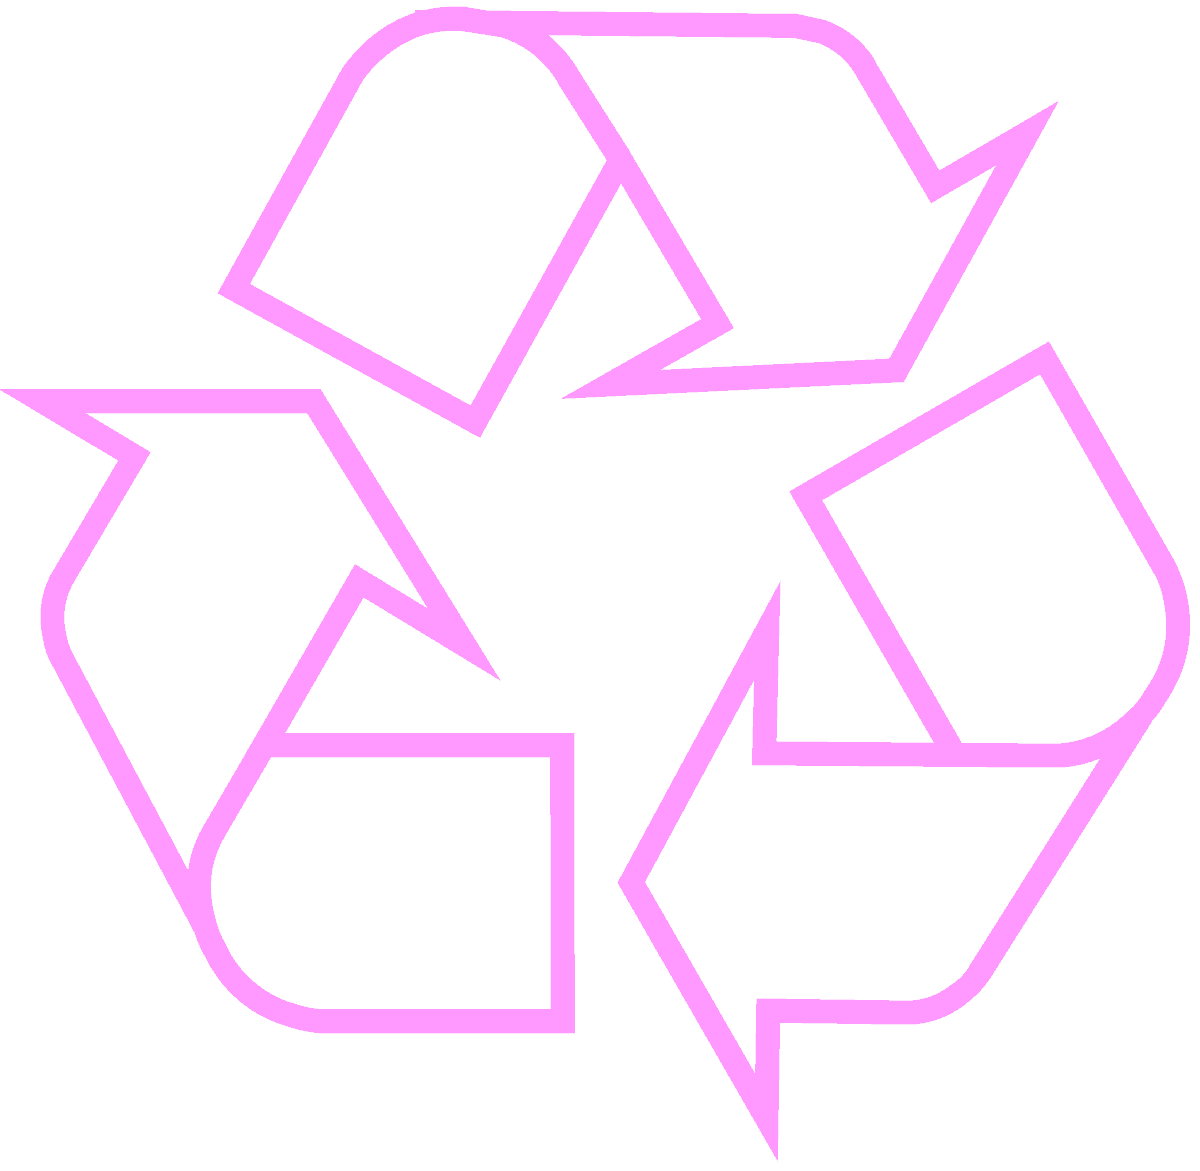 recycling-symbol-icon-outline-pink